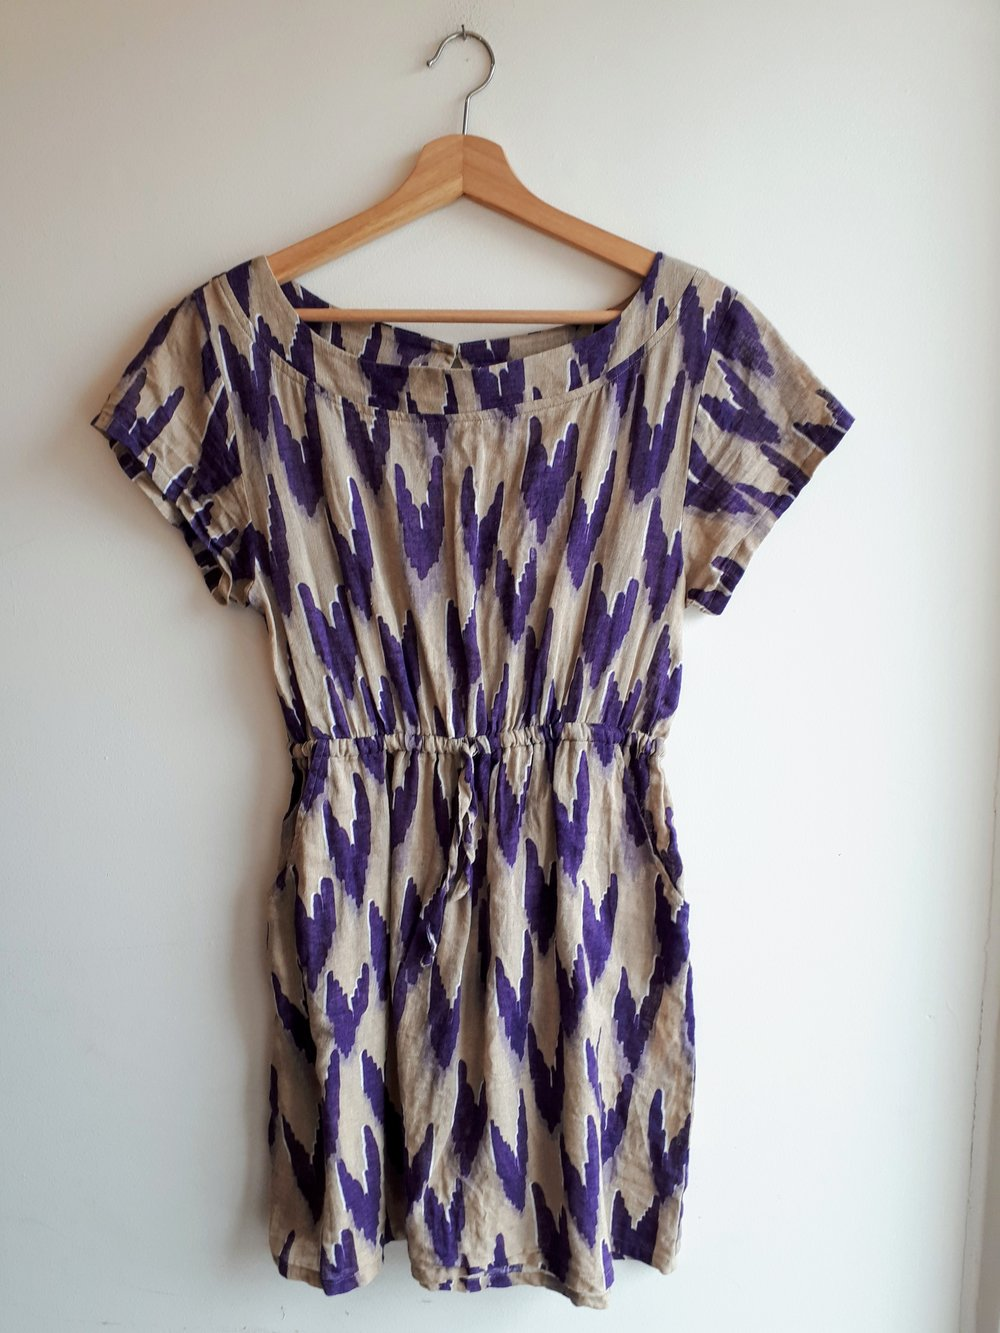 Mermaid tag dress; Size S, $30